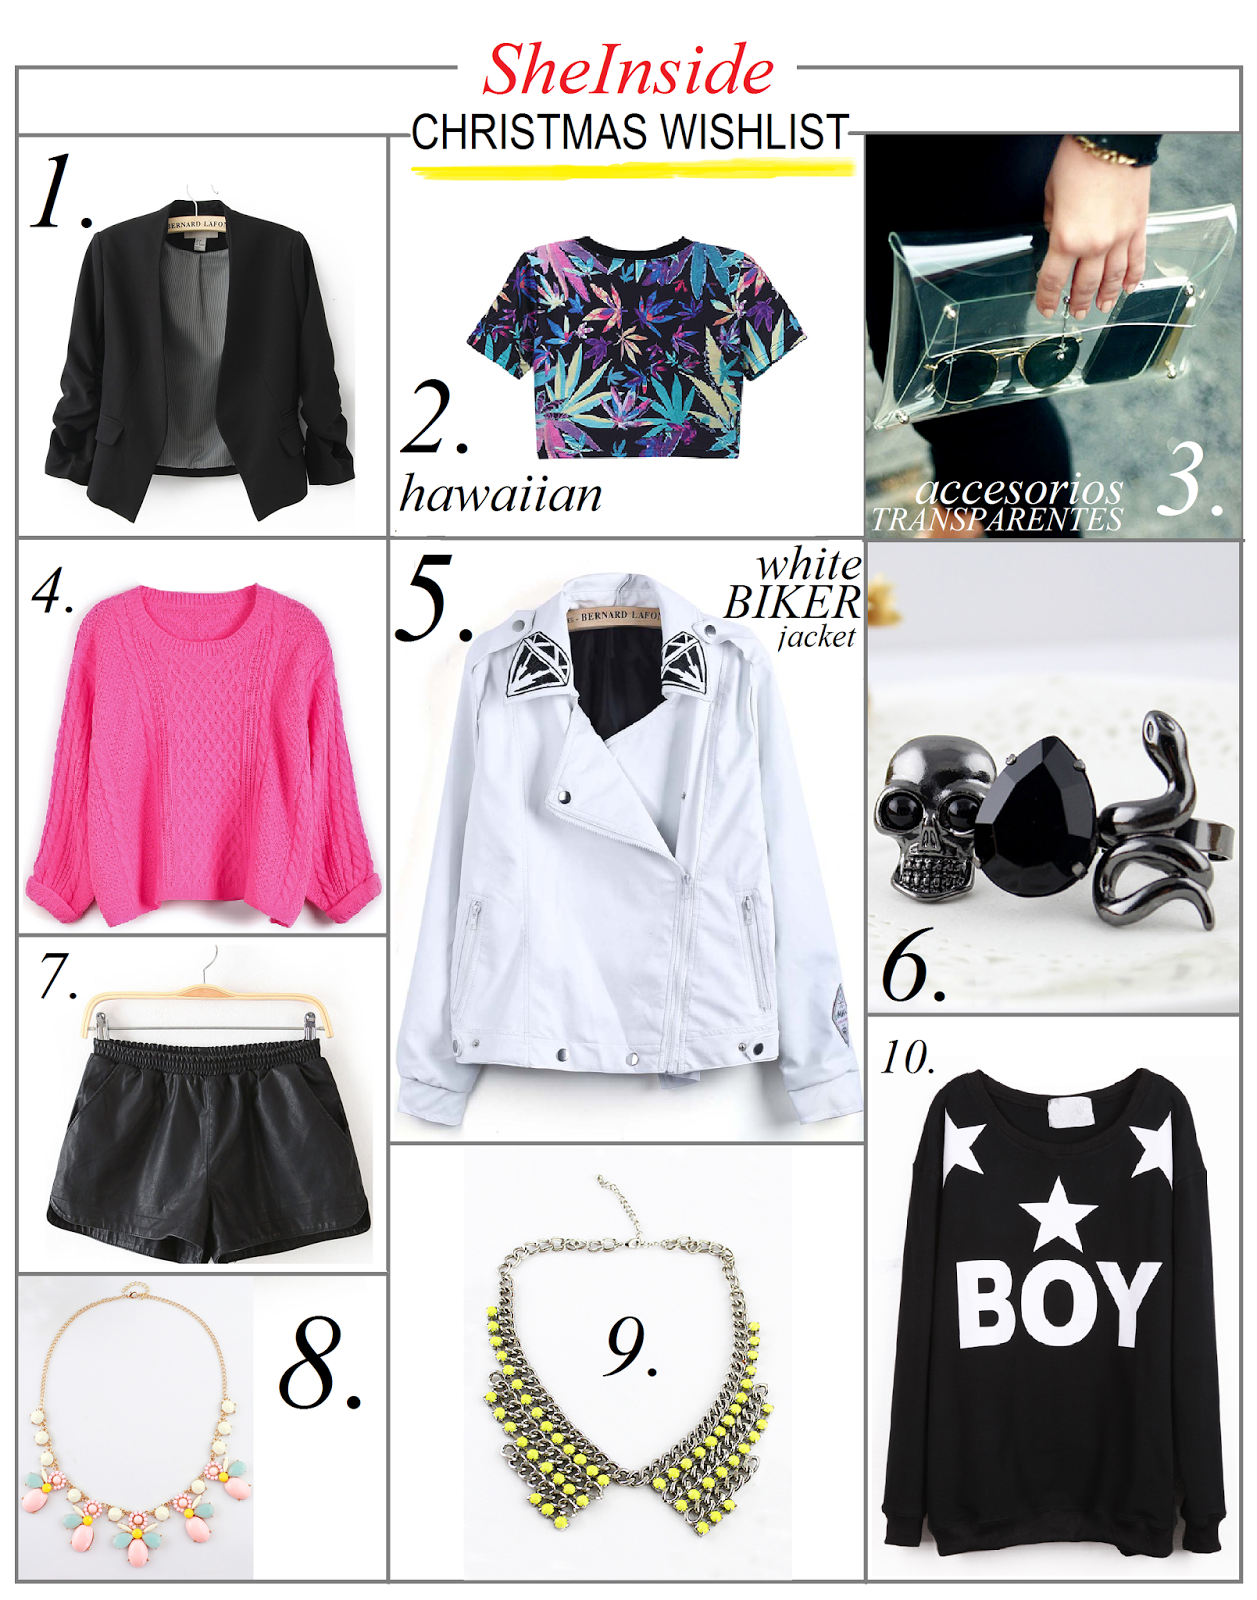 sheinside christmas wishlist